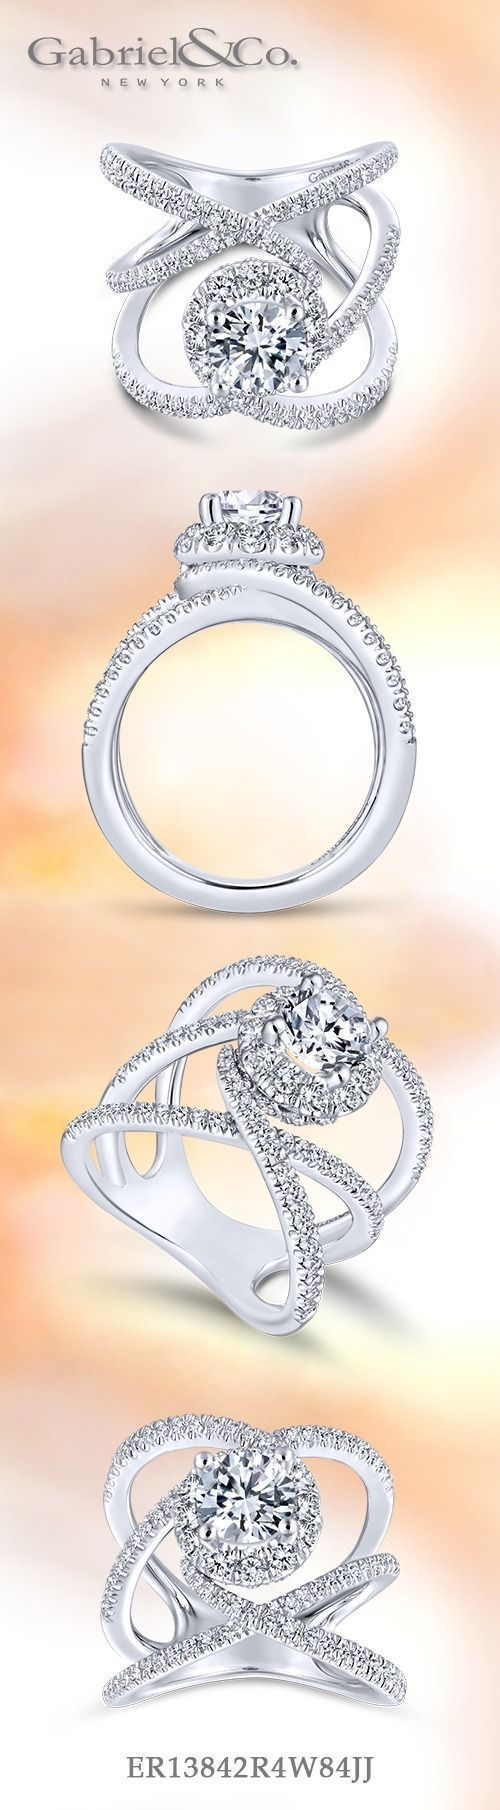 Gabriel NY - Preferred Fine Jewelry and Bridal Brand. Our gorgeous 14k White Gold Round Halo NOVA Engagement ring. This contemporary and modern will be perfect for women who are bold and head-strong and seek non-traditional rings. Find your nearest retail